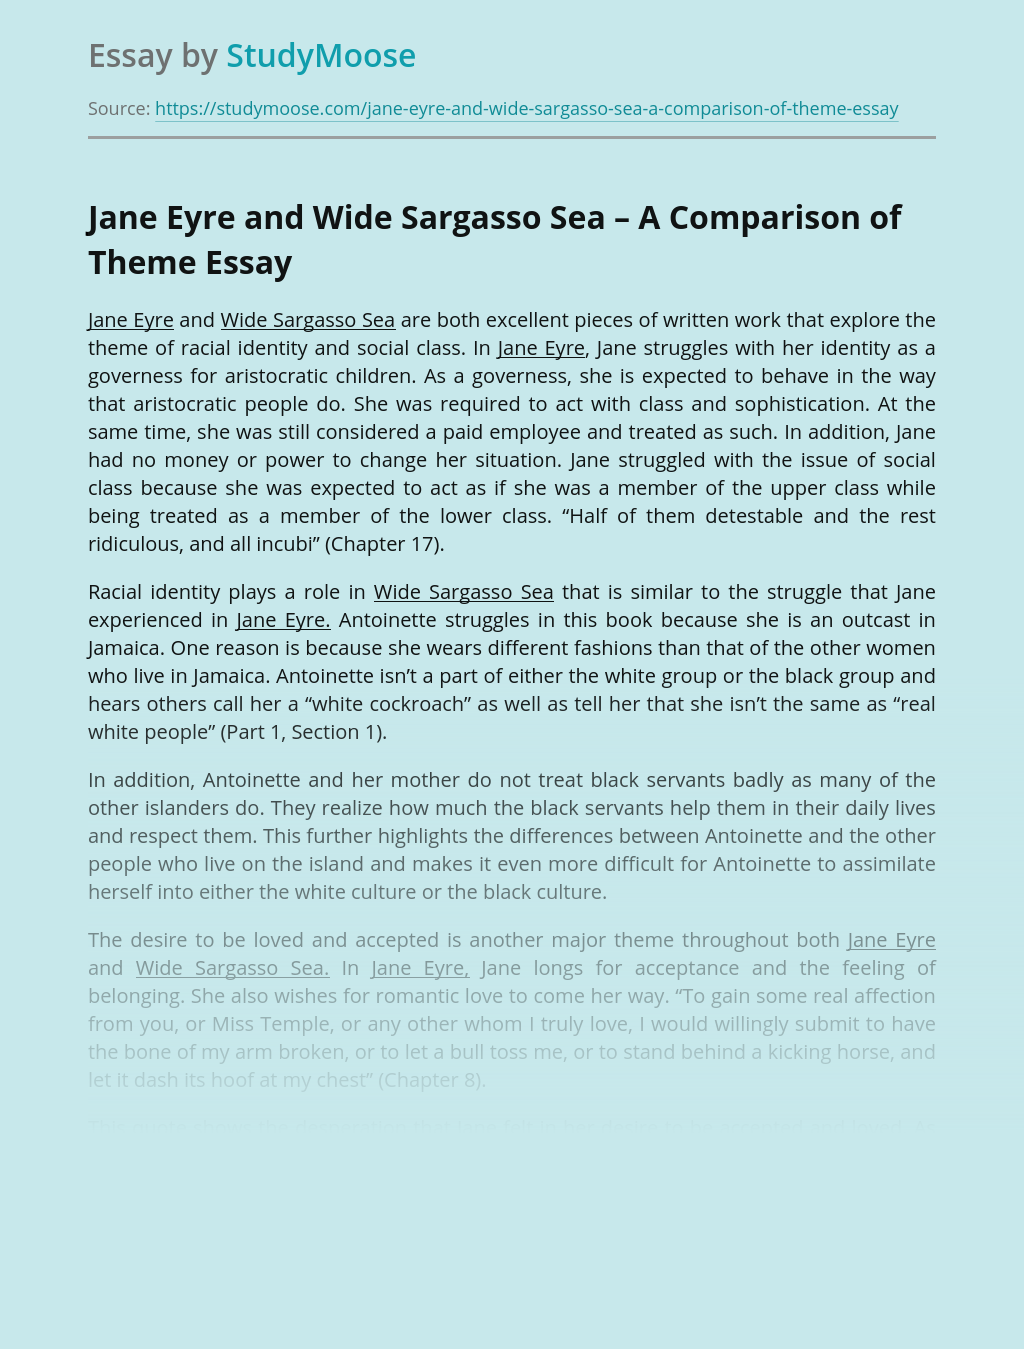 Jane Eyre and Wide Sargasso Sea – A Comparison of Theme